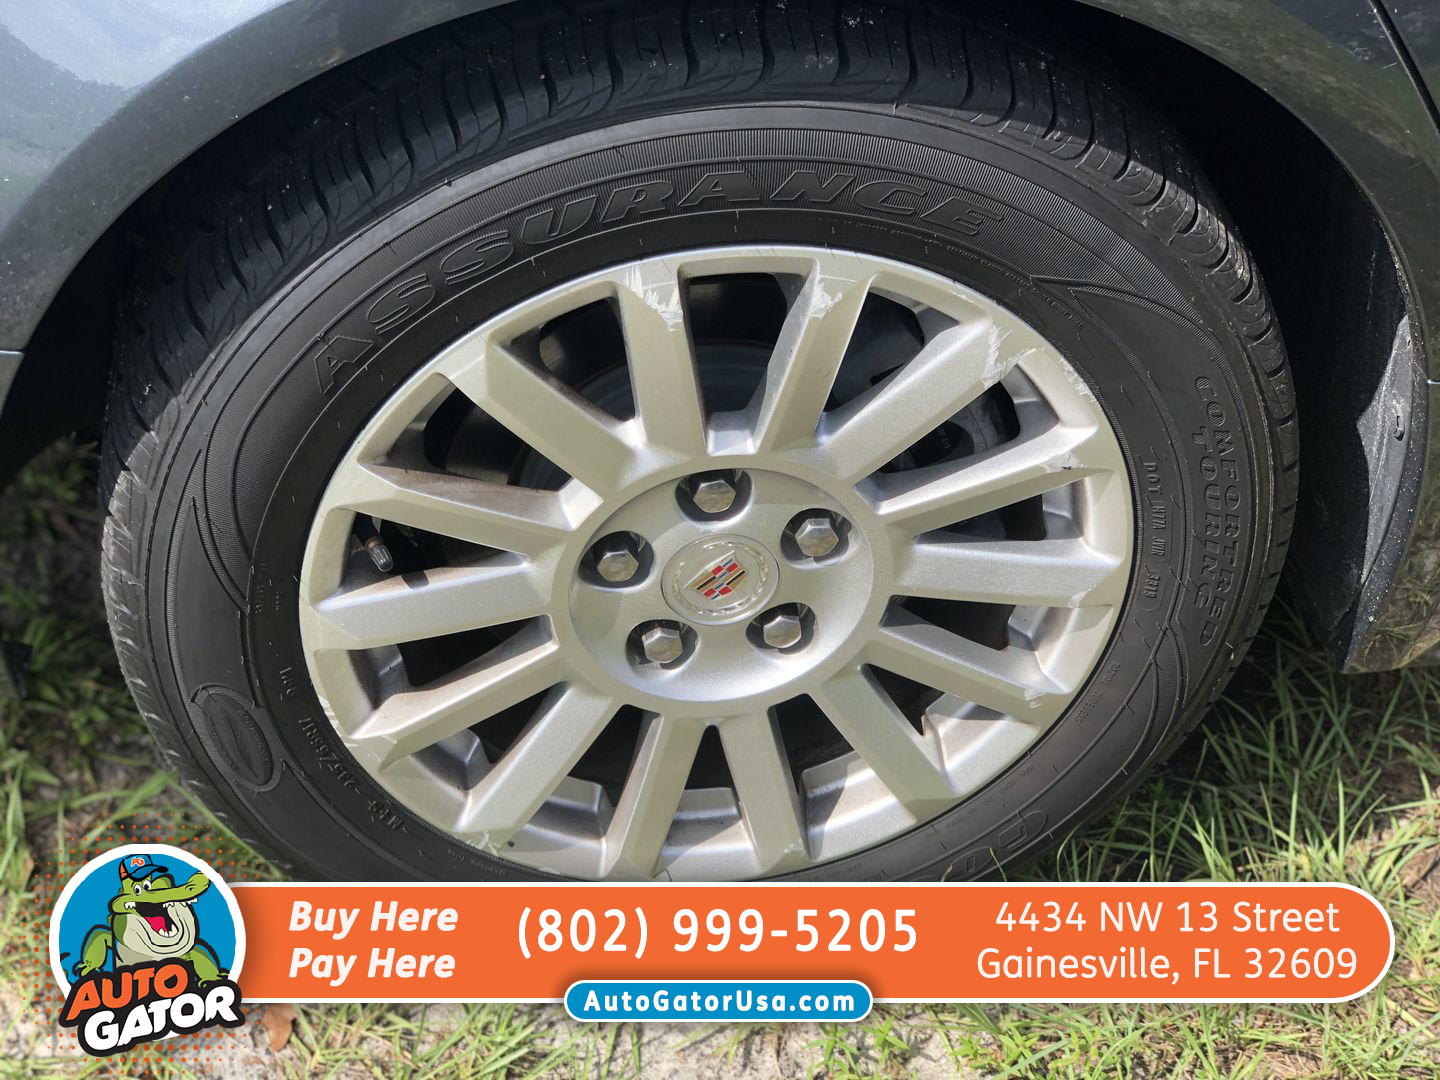 2013 Cadillac CTS Gainesville FL